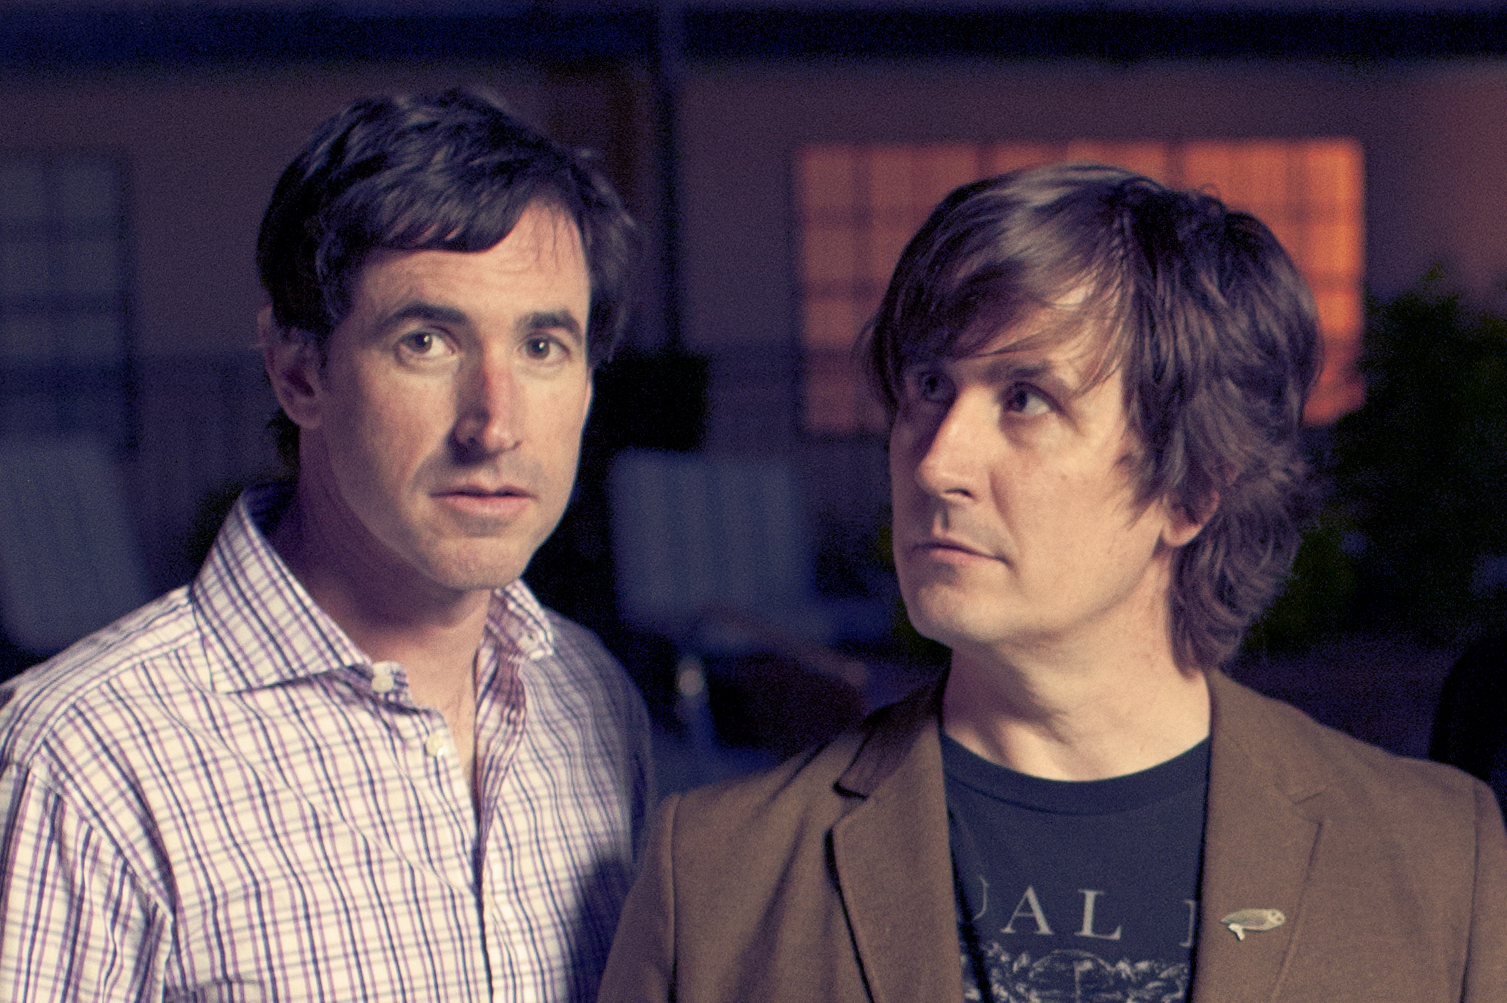 Inside Listening: The Mountain Goats' Bassist On His Own Band's Albums